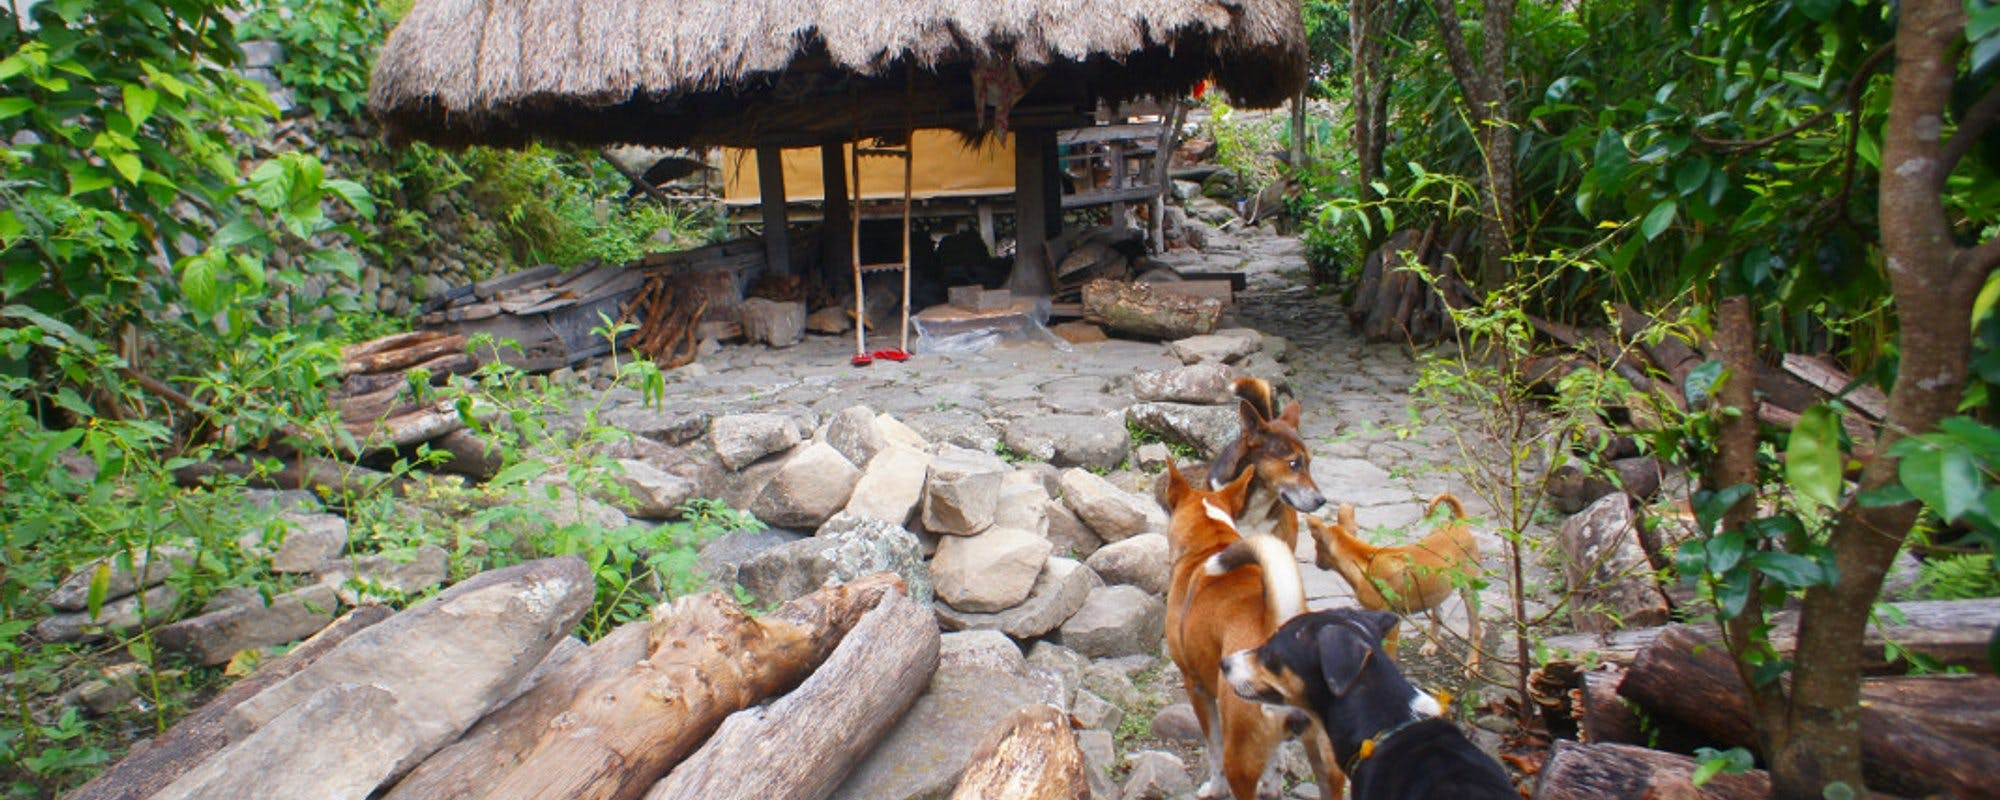 Meet the Guide Dogs of Batad Rice Terraces